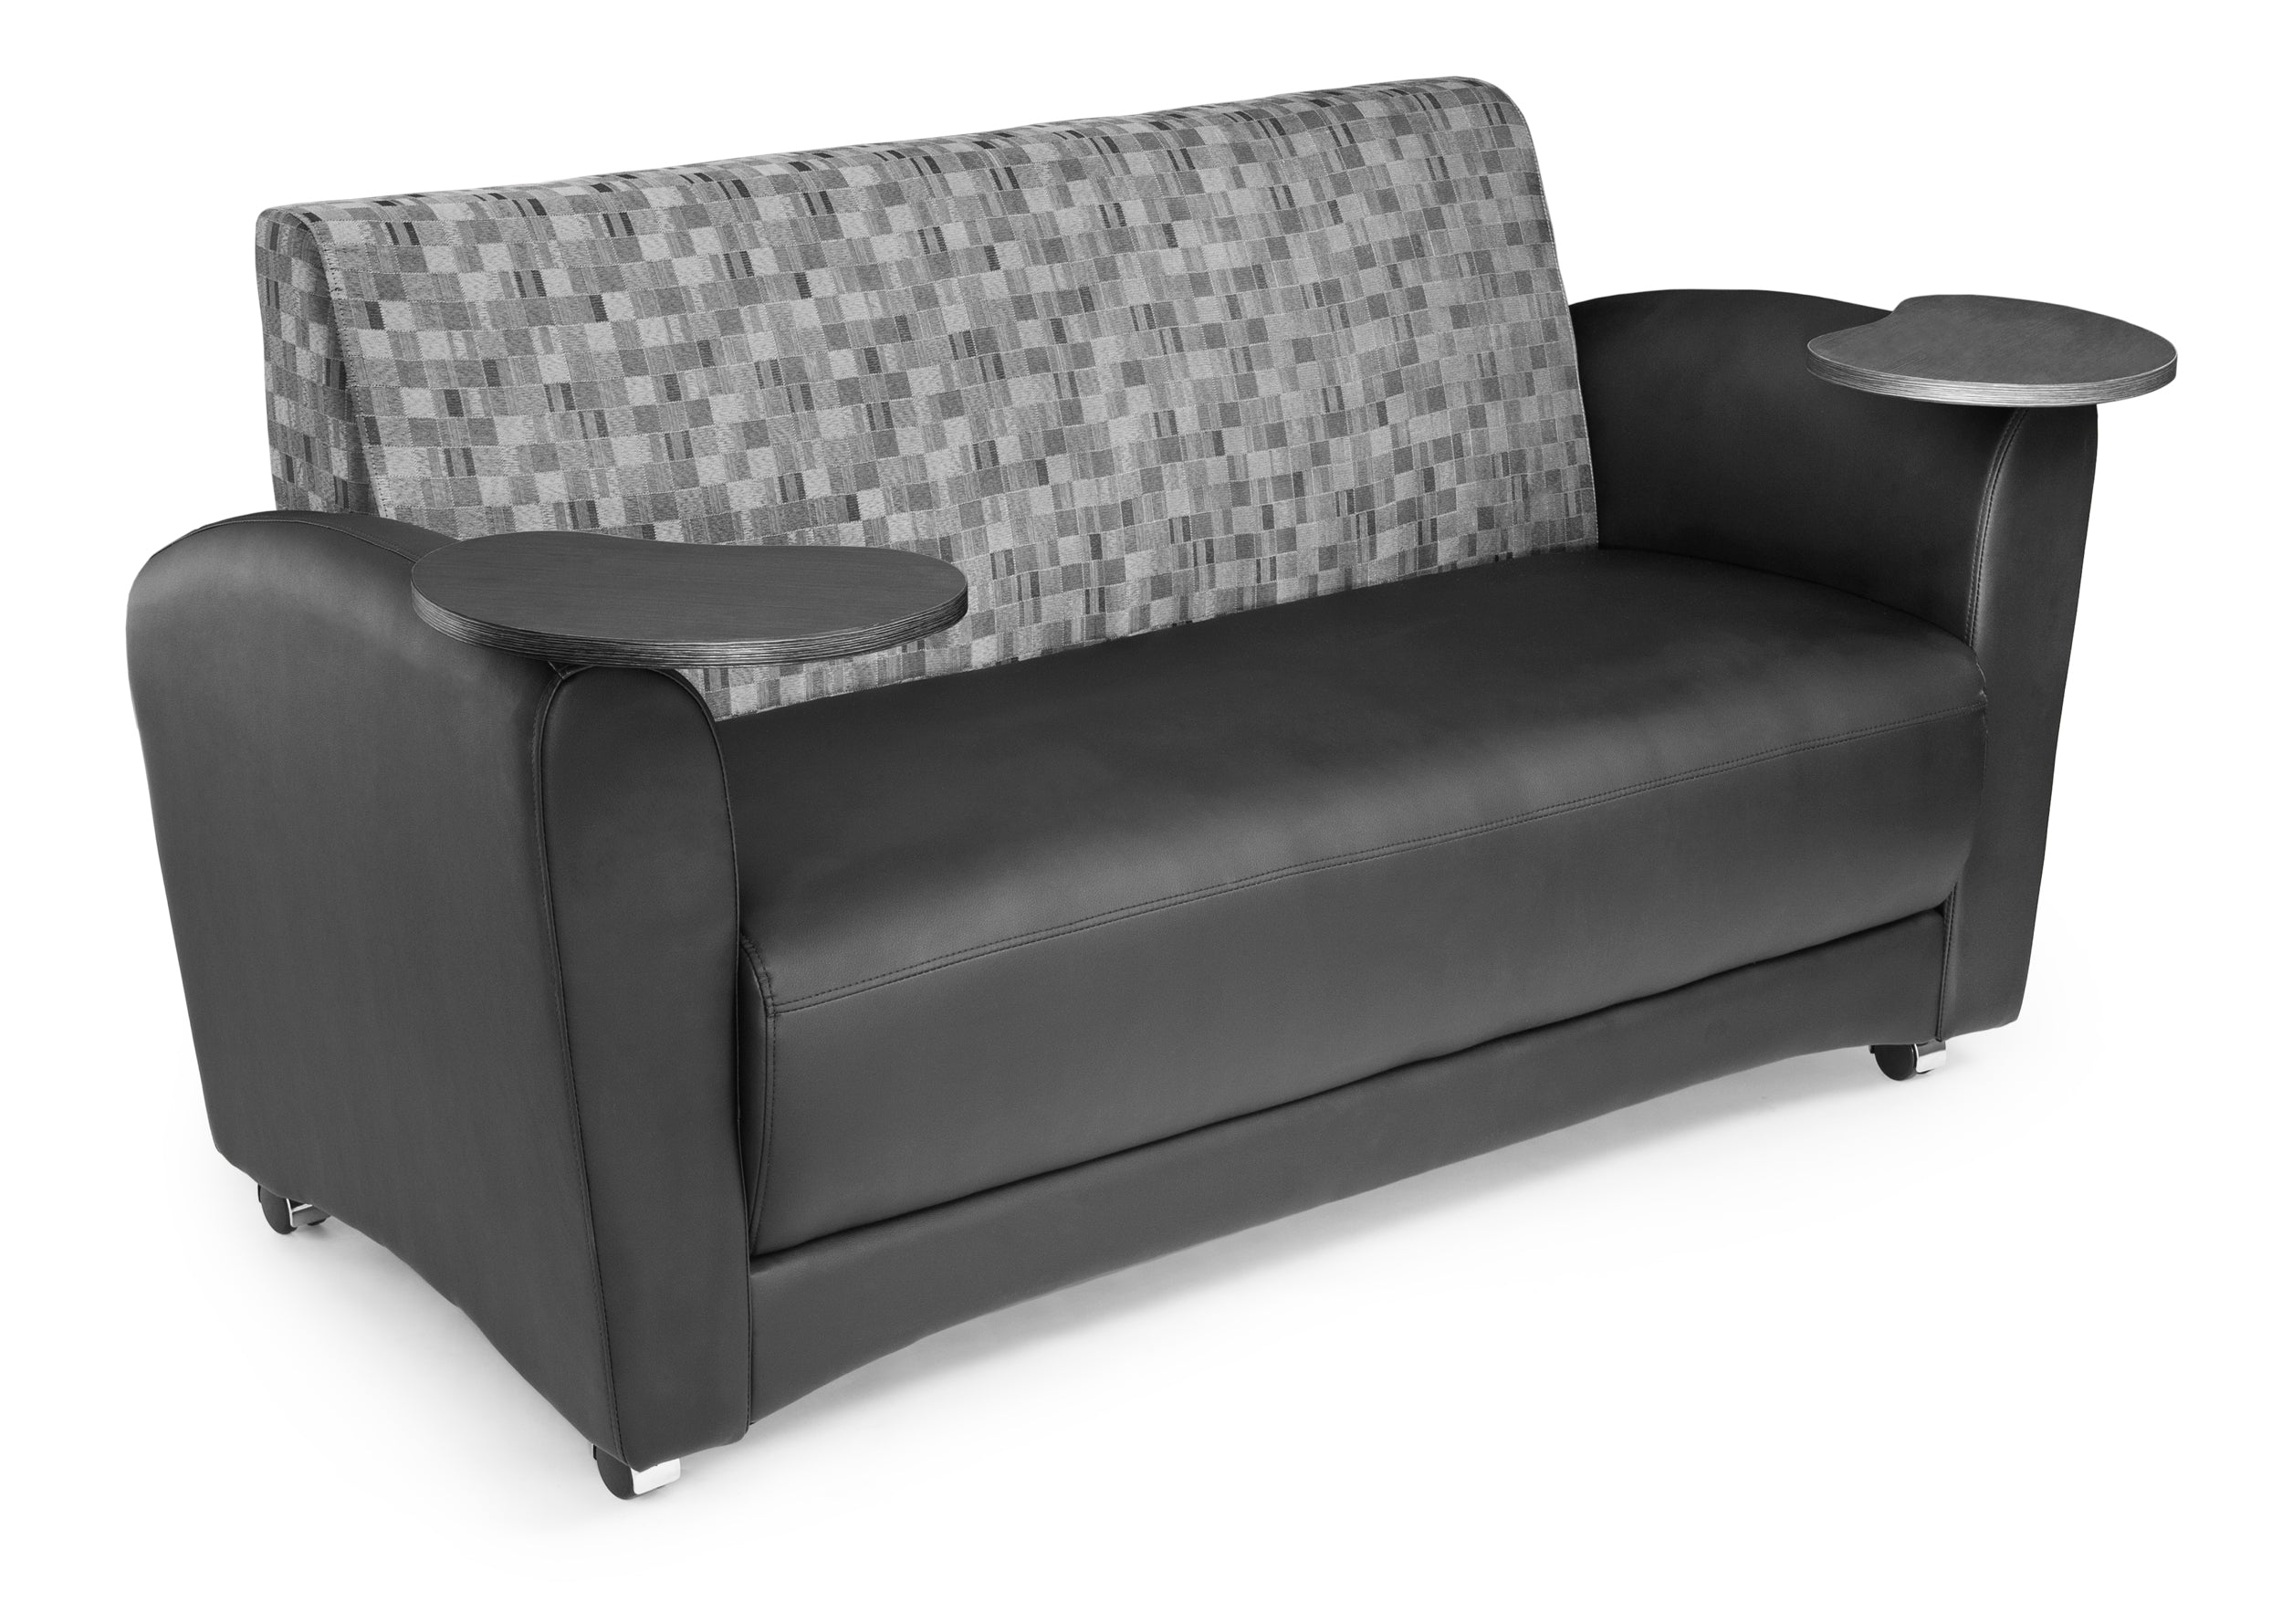 Ofminc Model 822 InterPlay Series Double Tablet Sofa